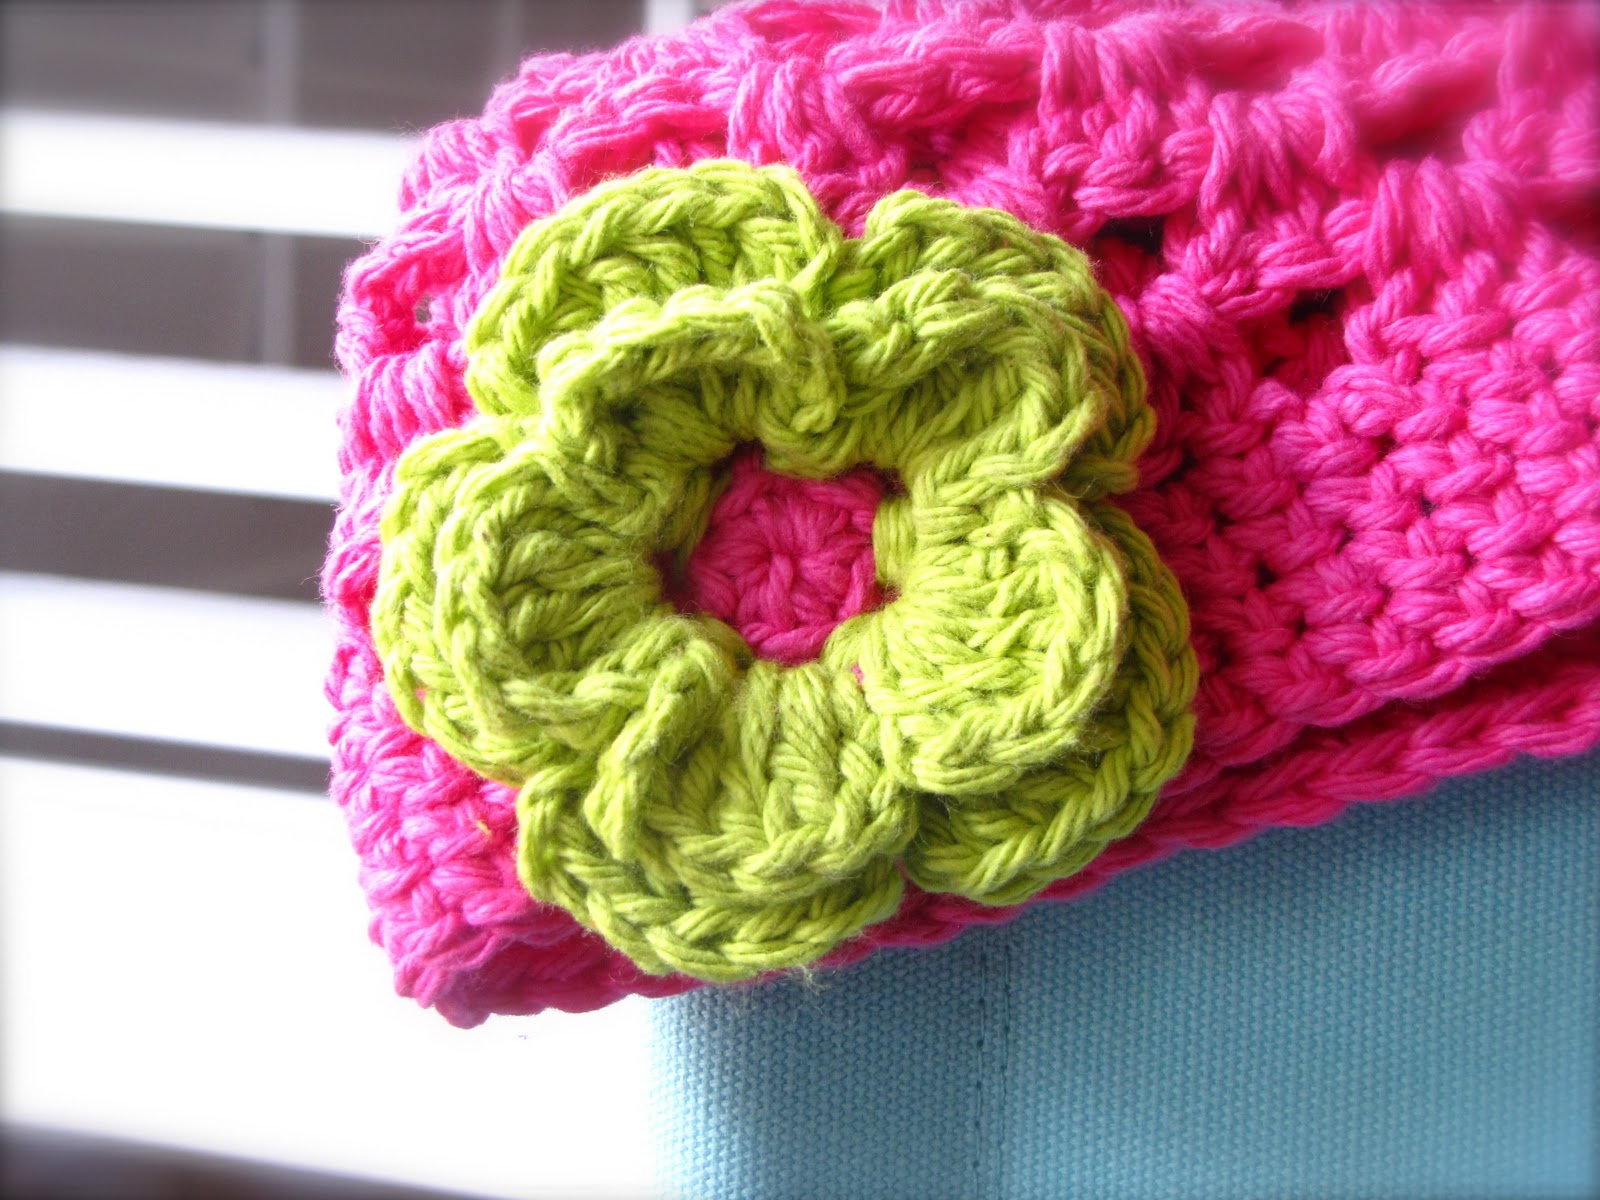 Crochet Hat Patterns Flowers : Double Layer Daisy Crochet Pattern - Daisy Cottage Designs